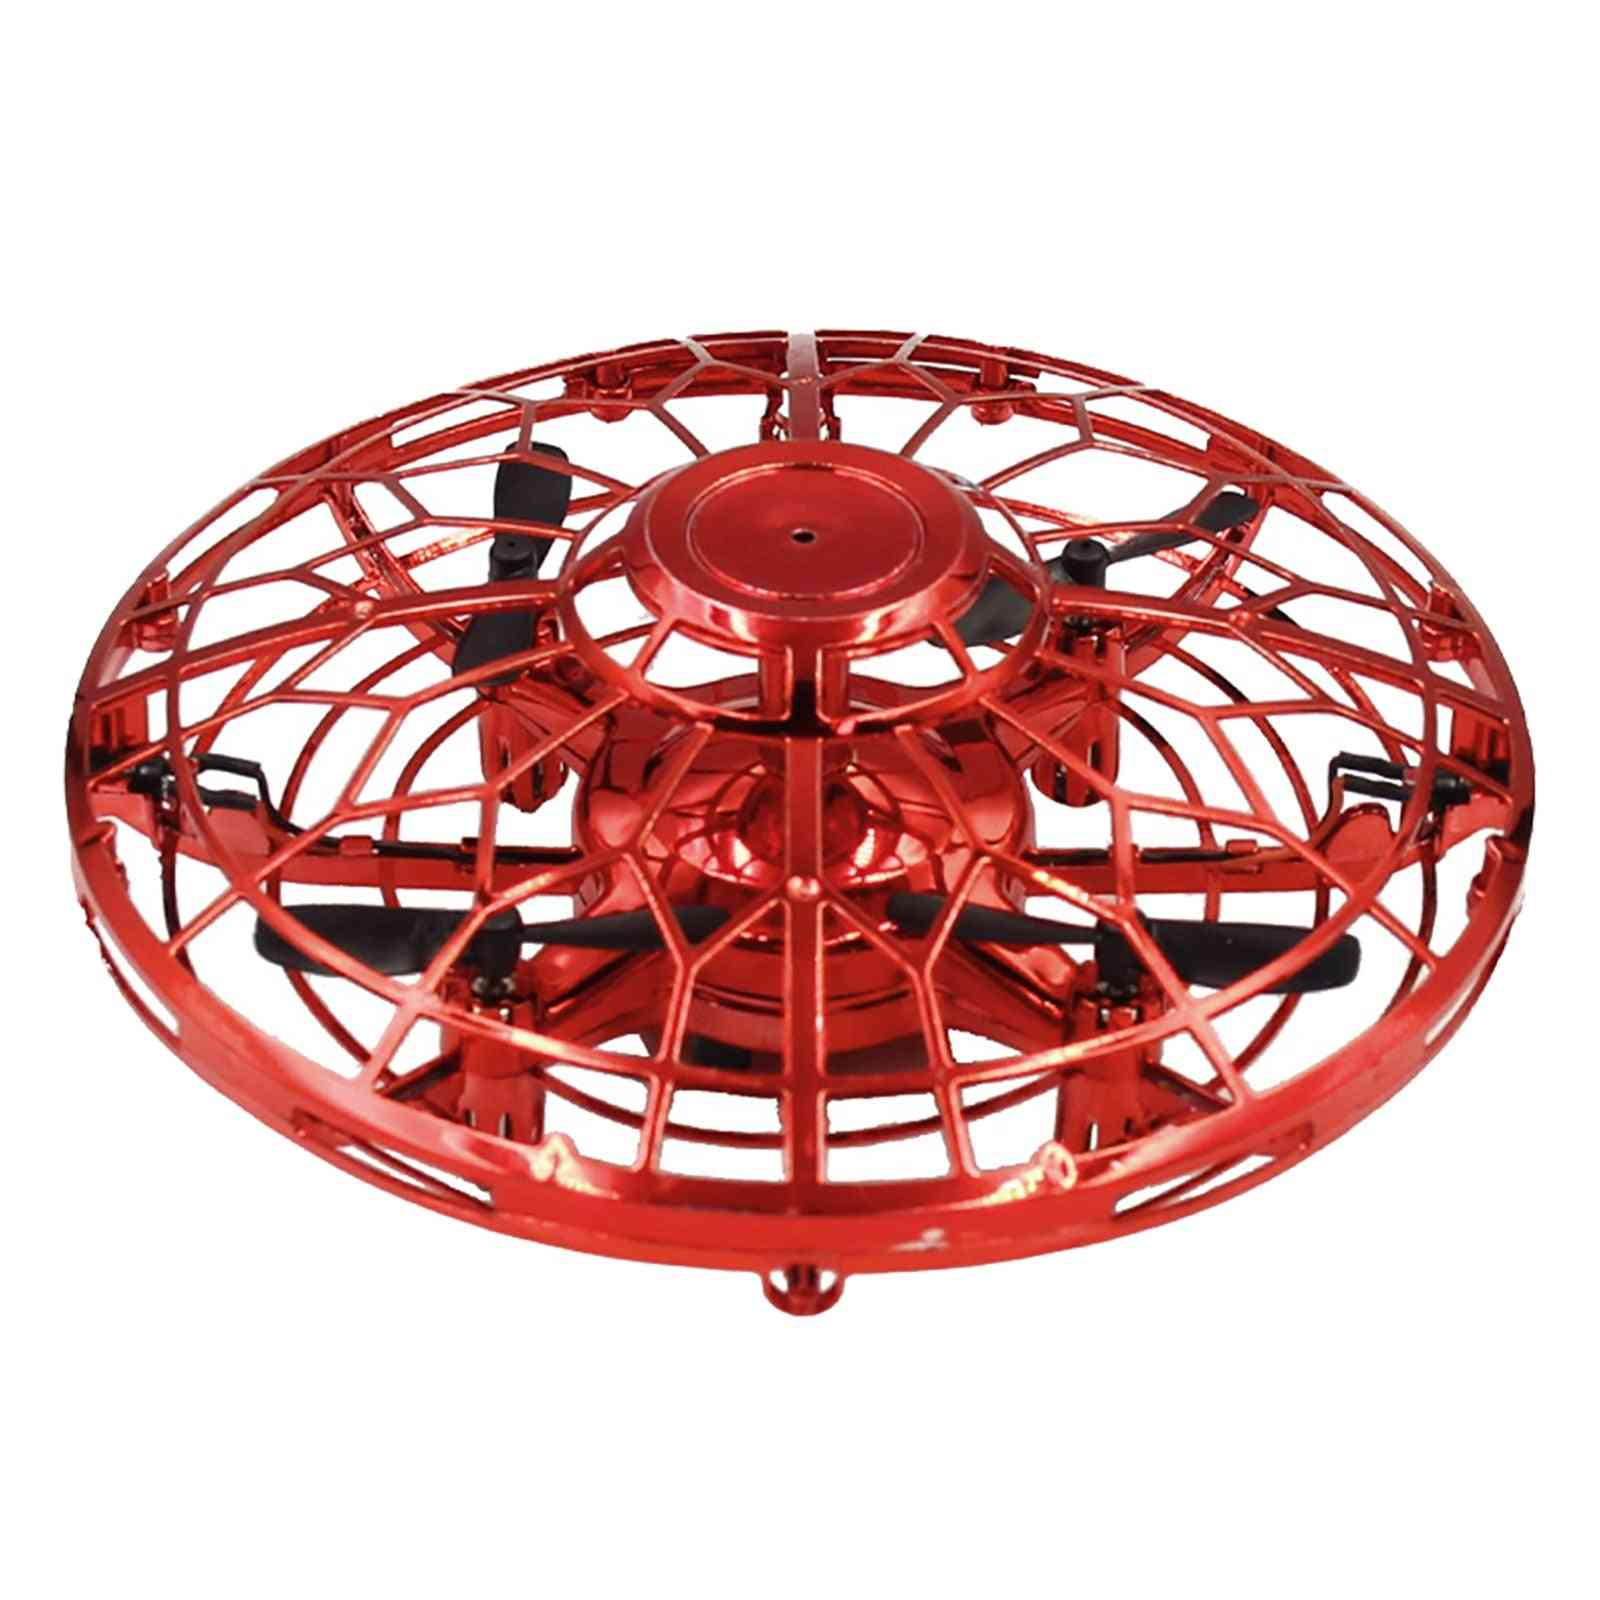 Toys For Children, Hand Operated, Mini Drone For Kids, Flying Ball Helicopter Infrared